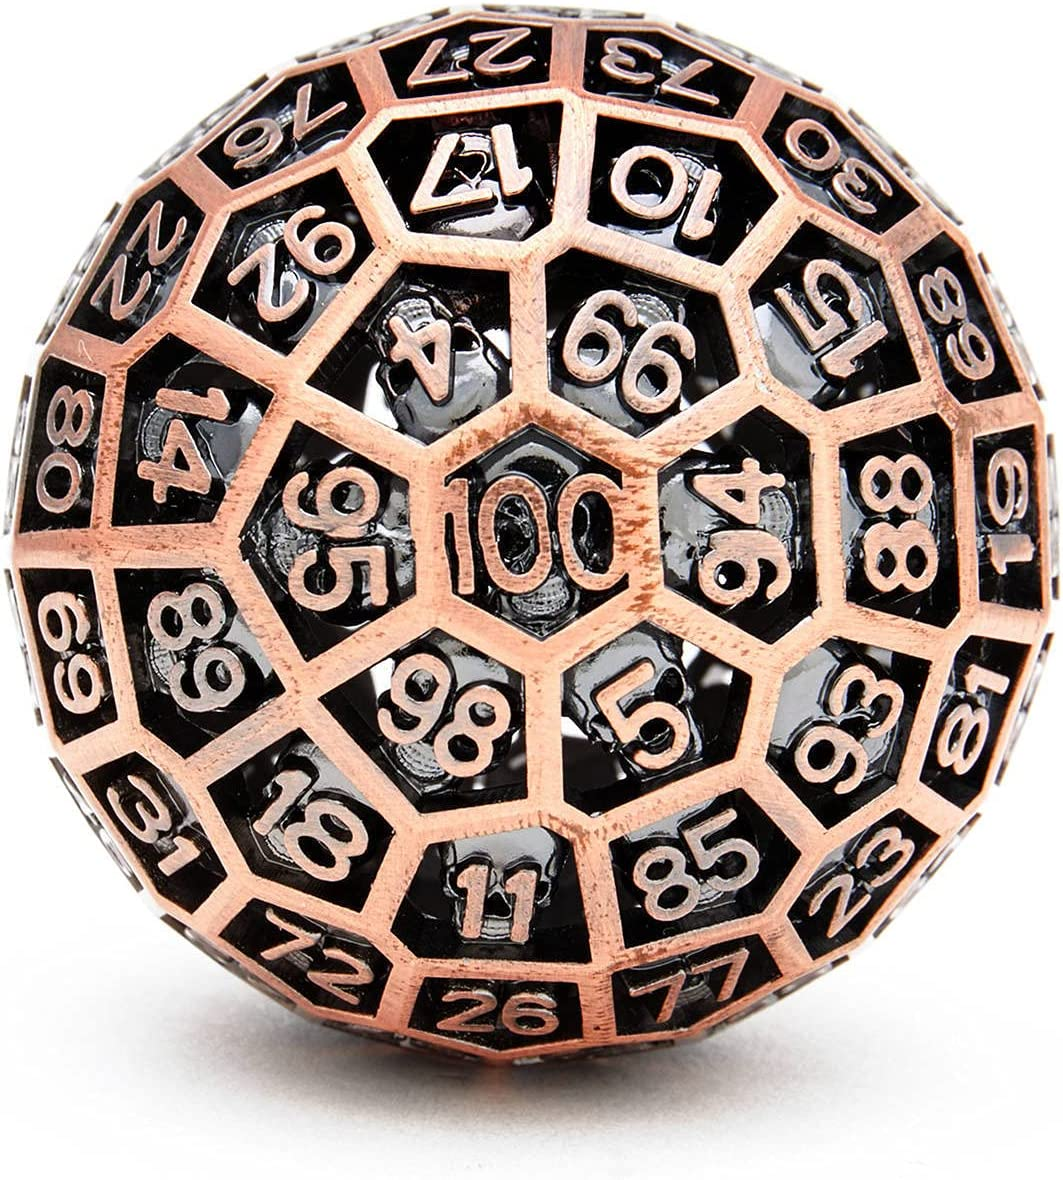 FeiyueDa Ball of Destiny: D100 Hollow Dice 2021 spring and summer new DND Metal Skull New color